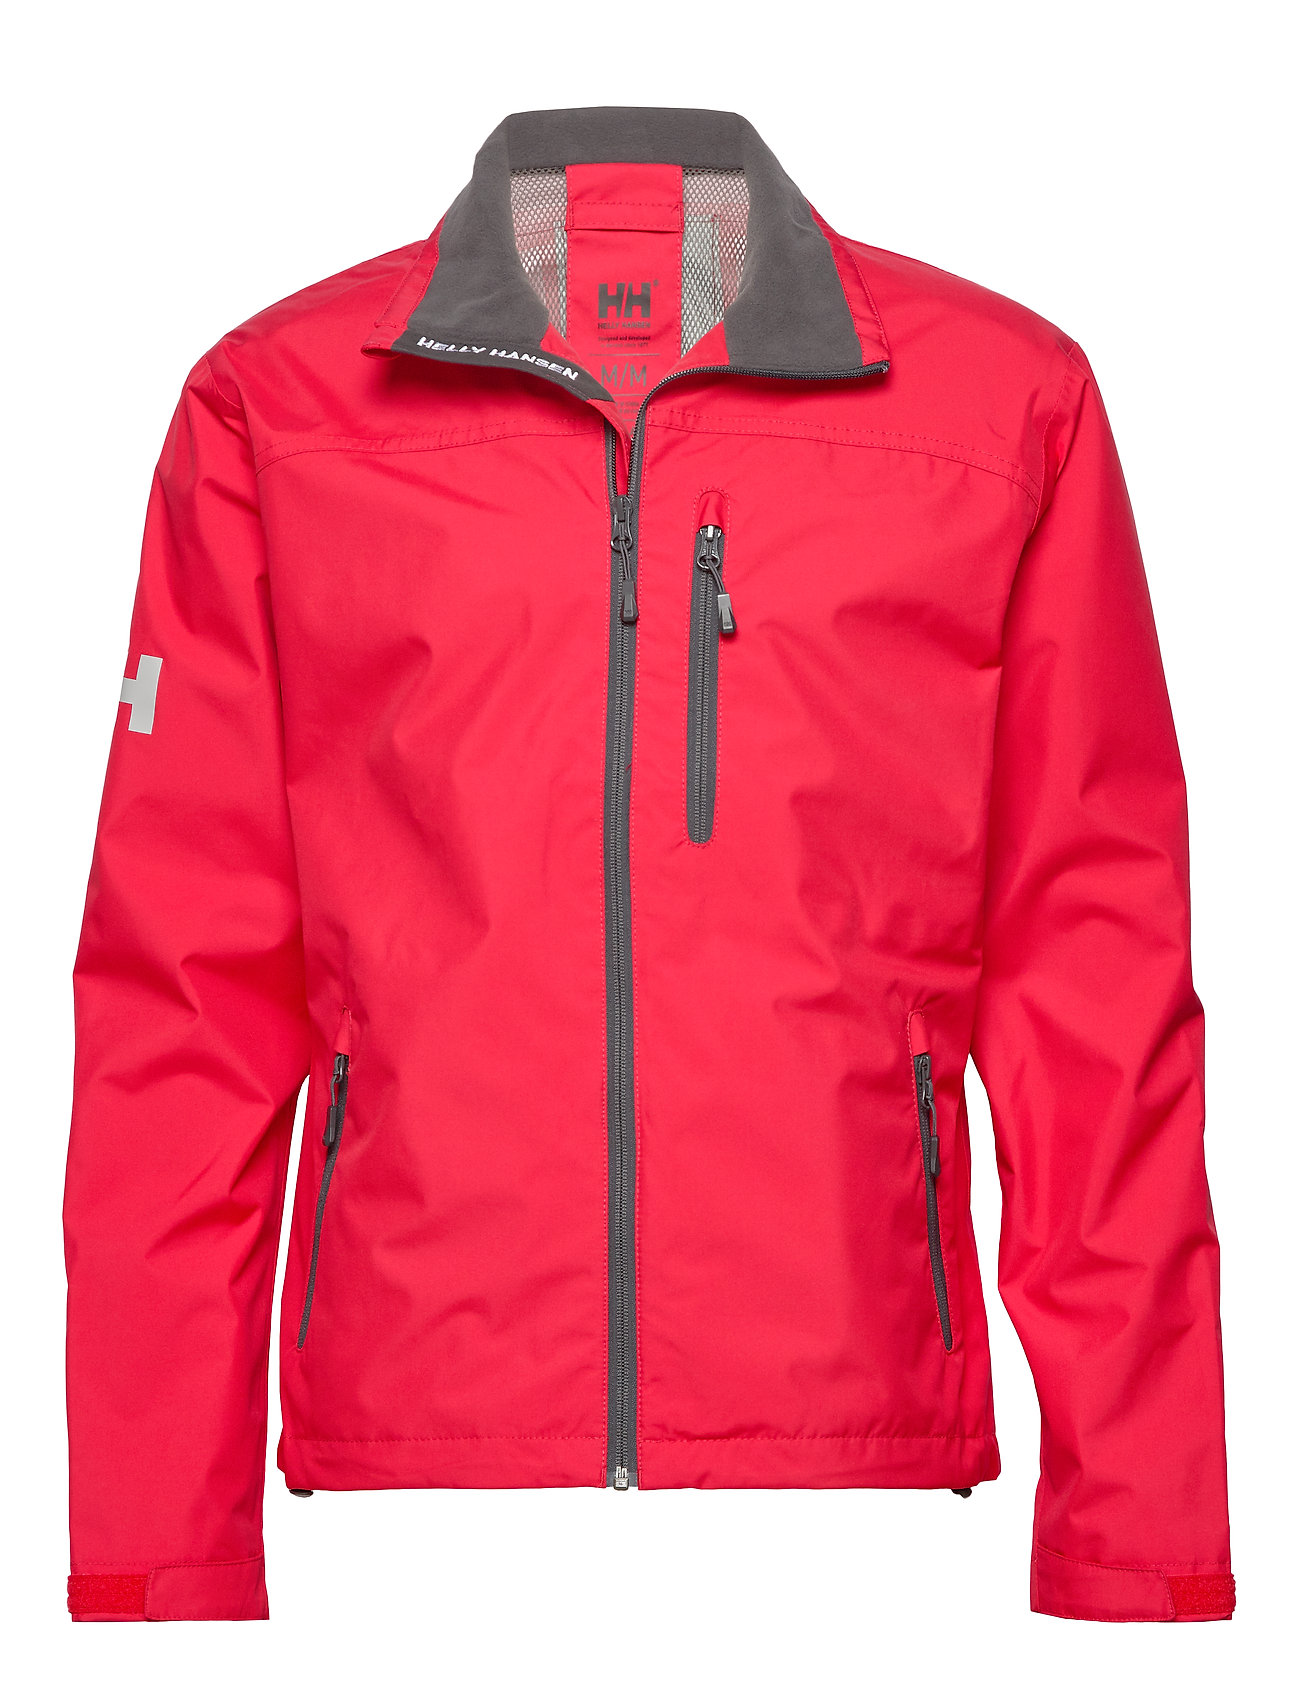 Helly Hansen CREW JACKET - RED